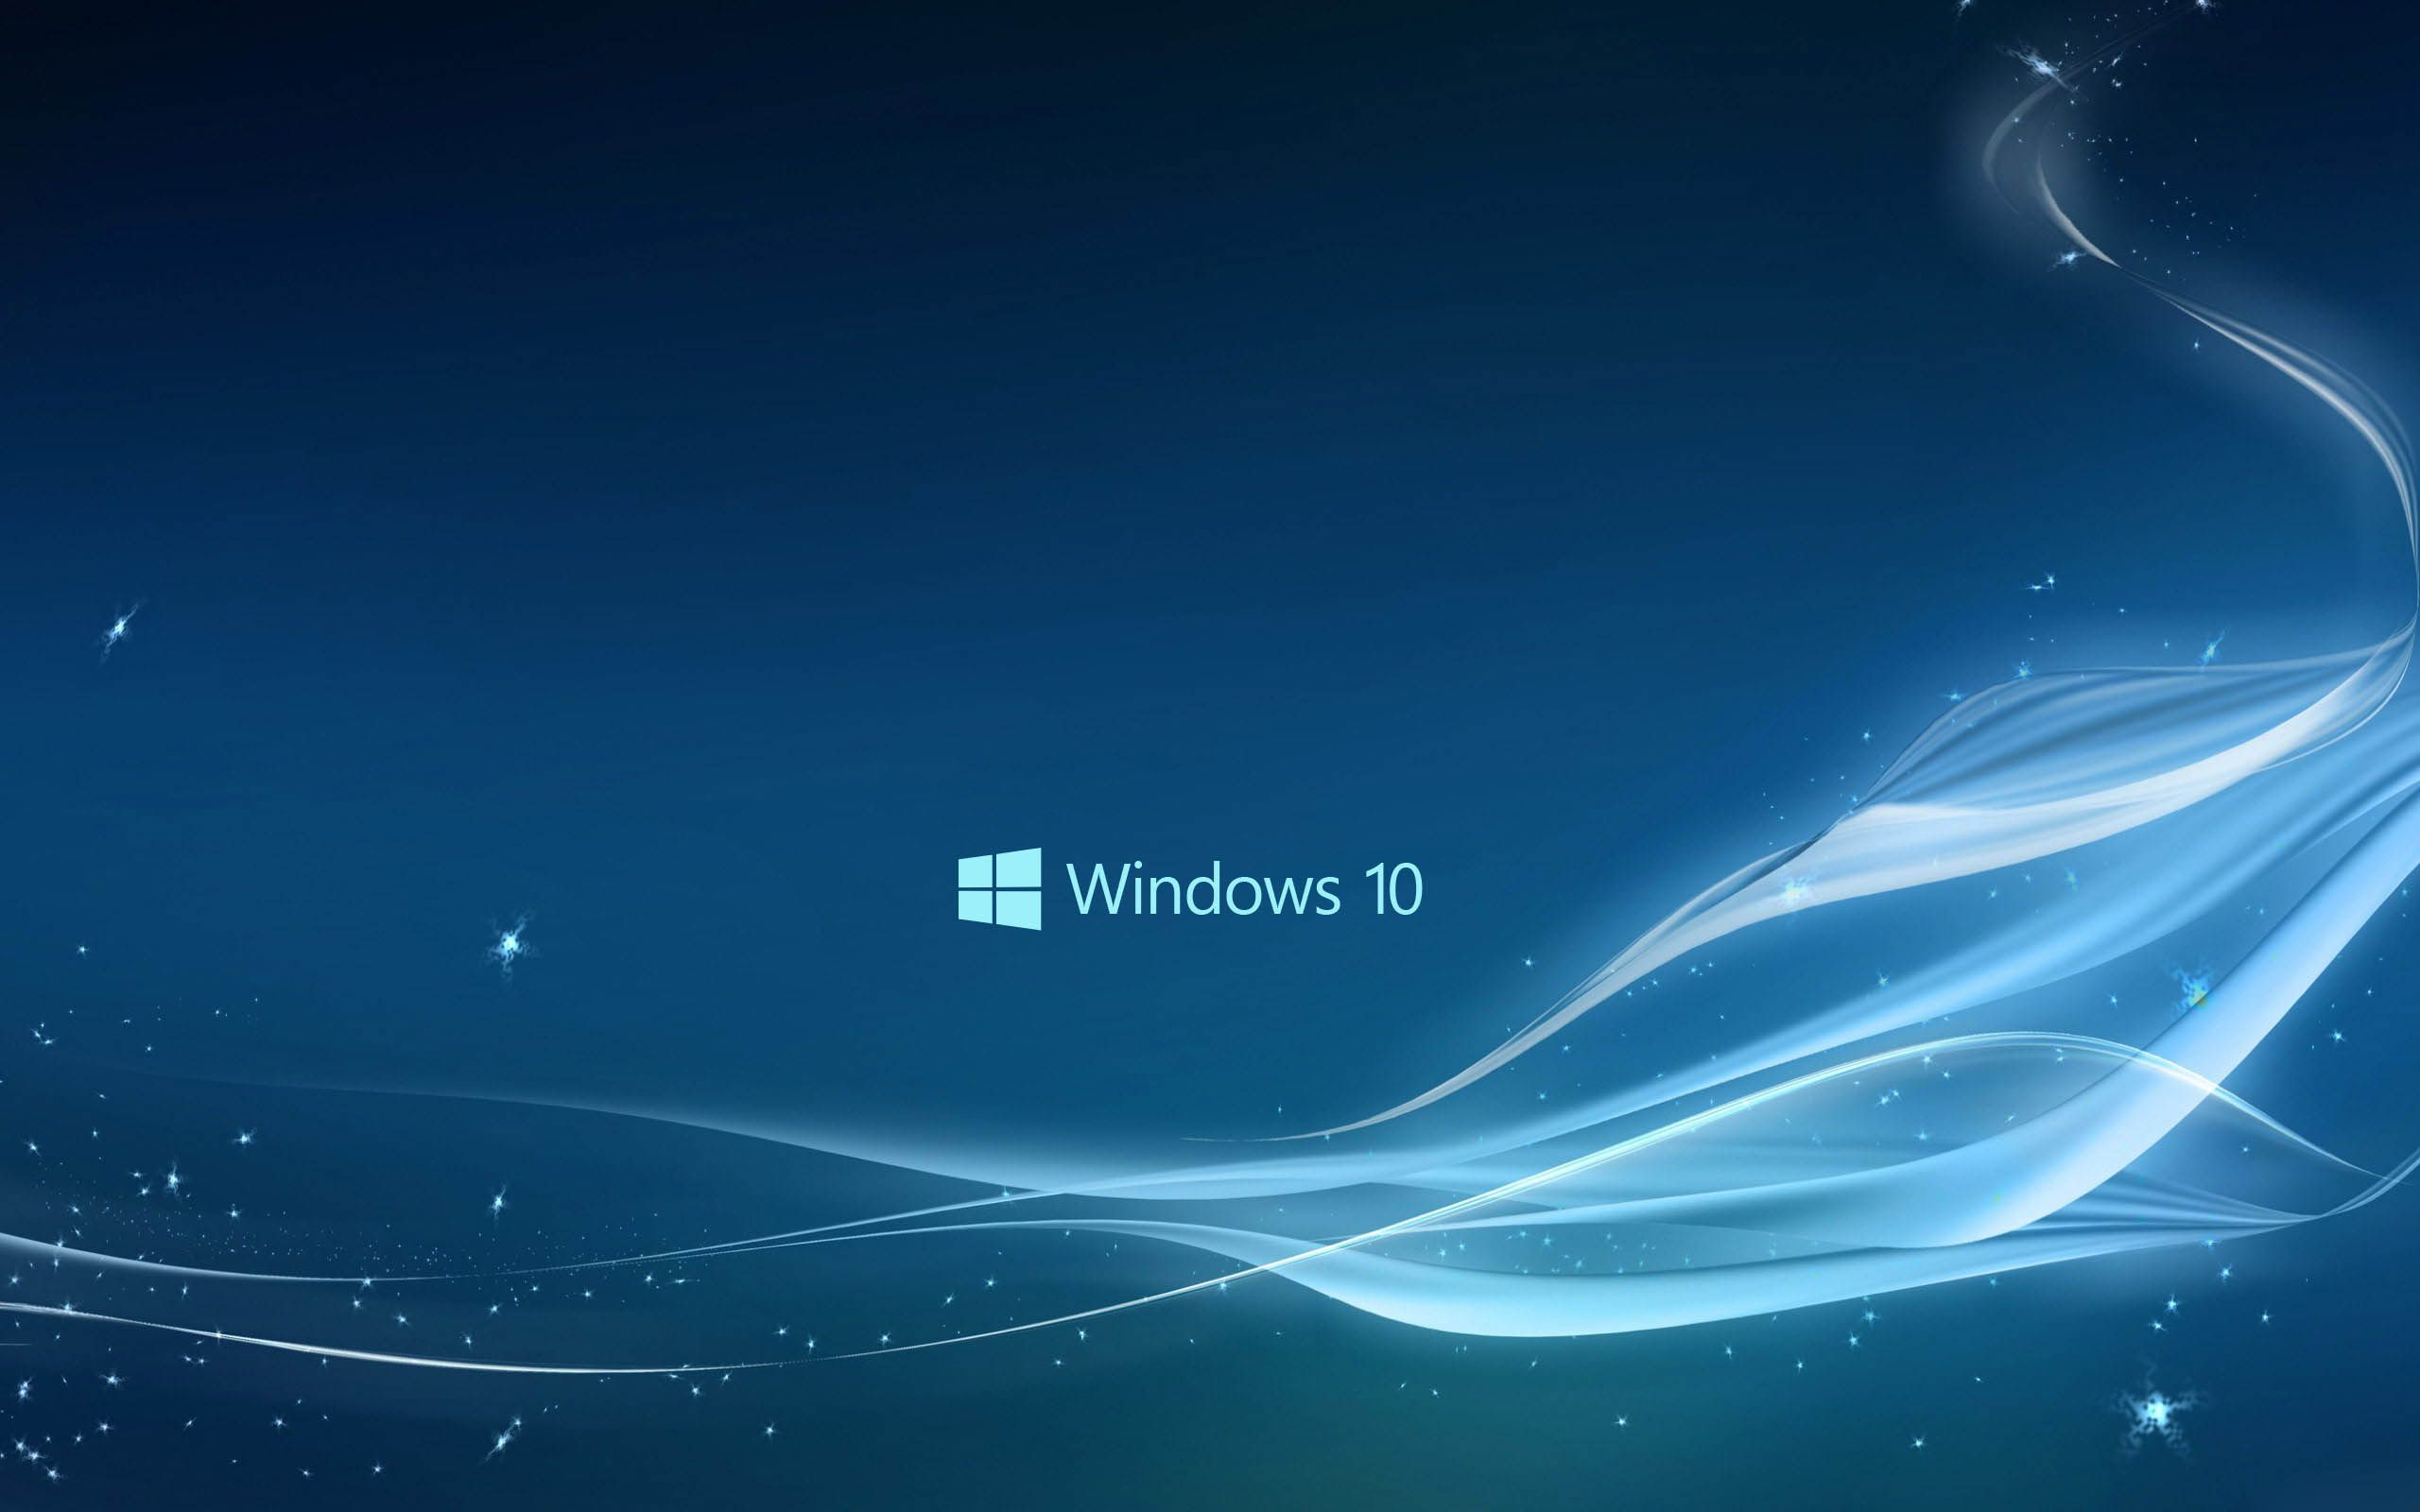 Windows 10 Wallpapers Desktop